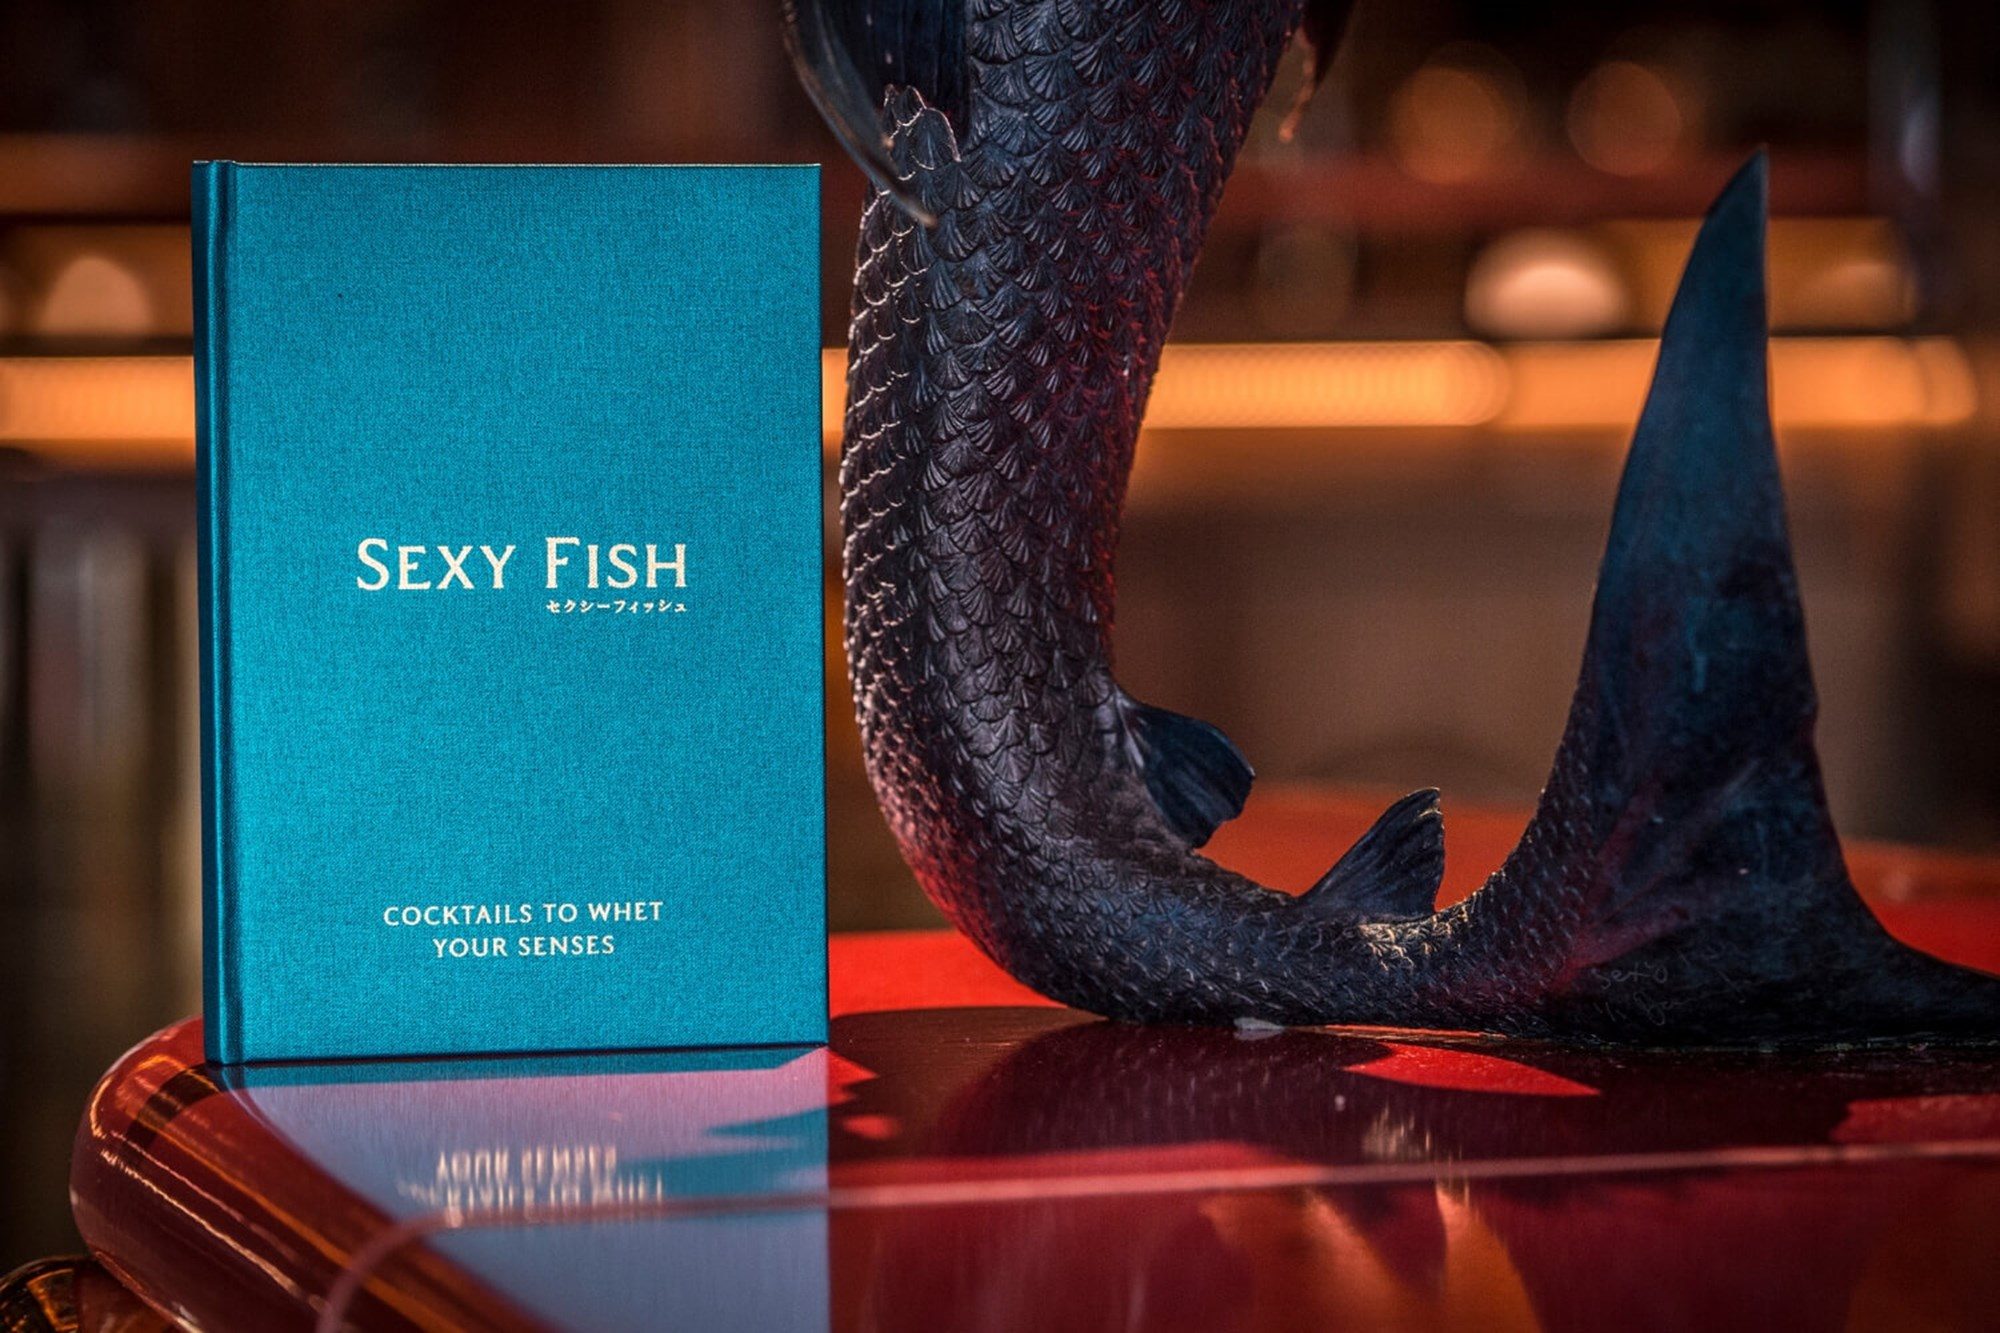 Sexy Fish is a late night bar in Mayfair serving cocktails